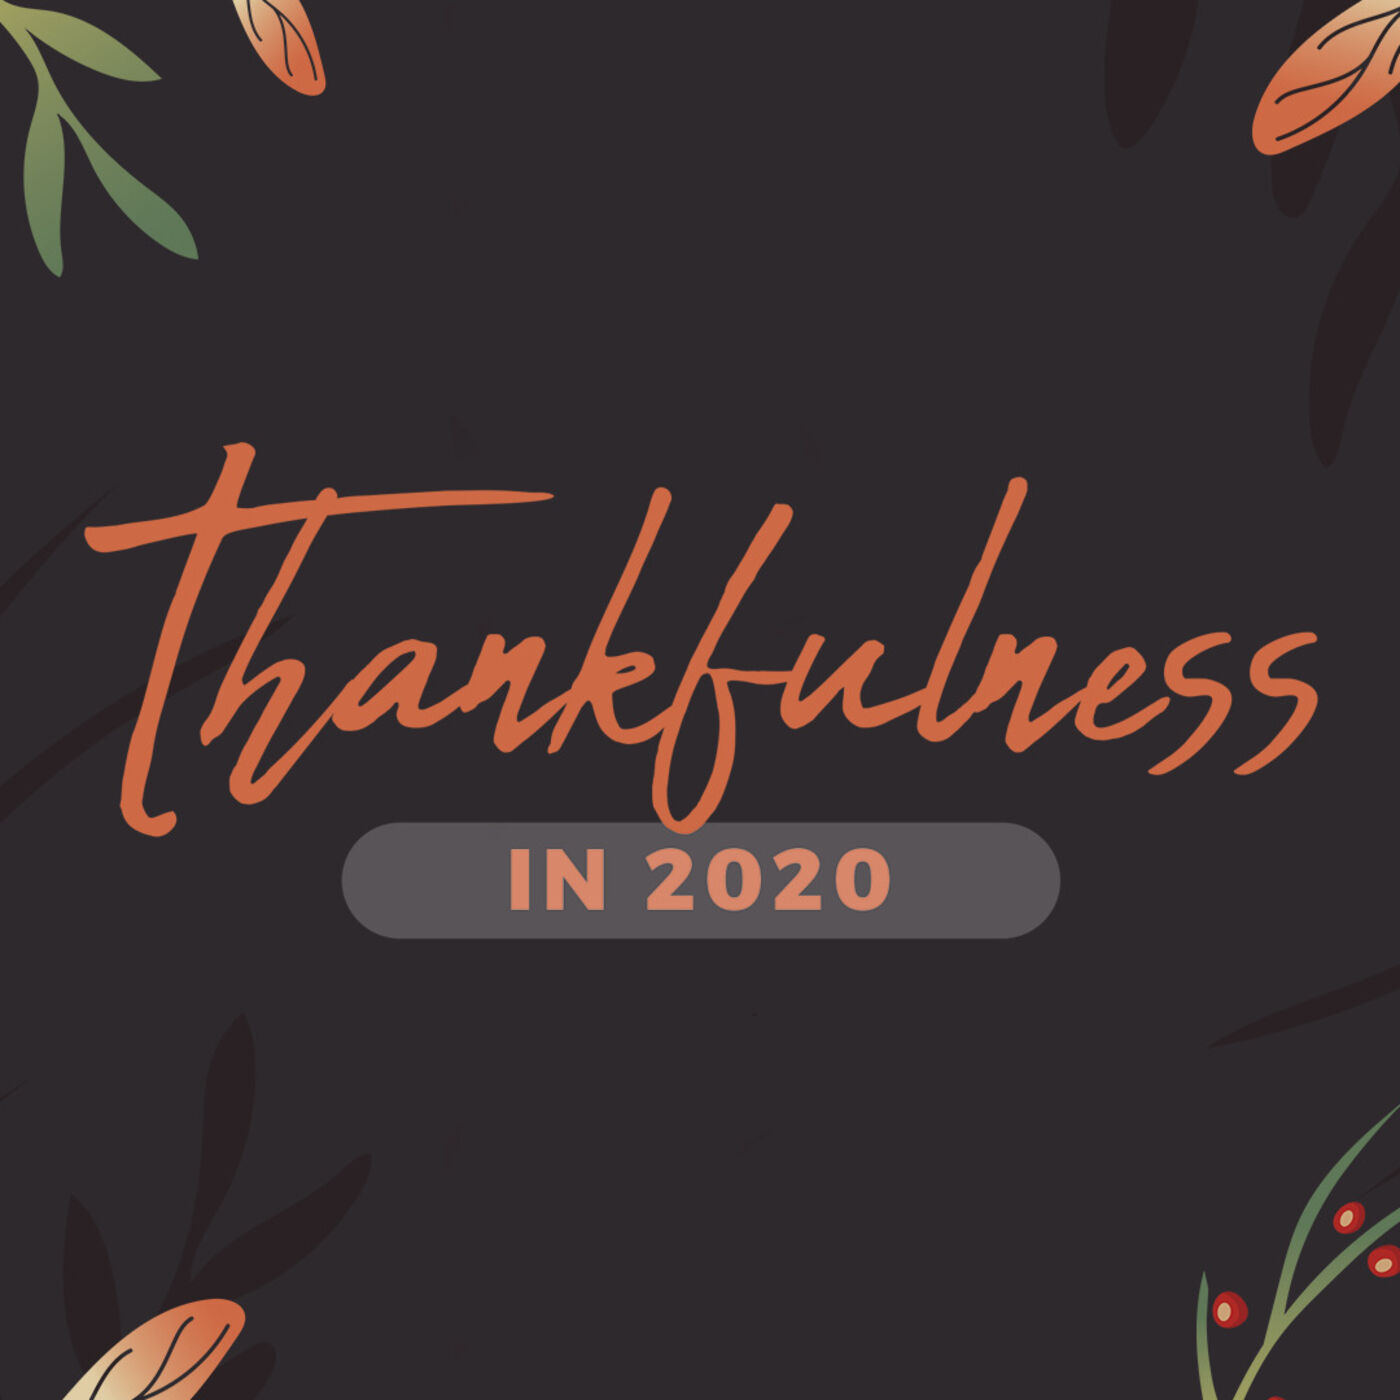 Thankfulness in 2020